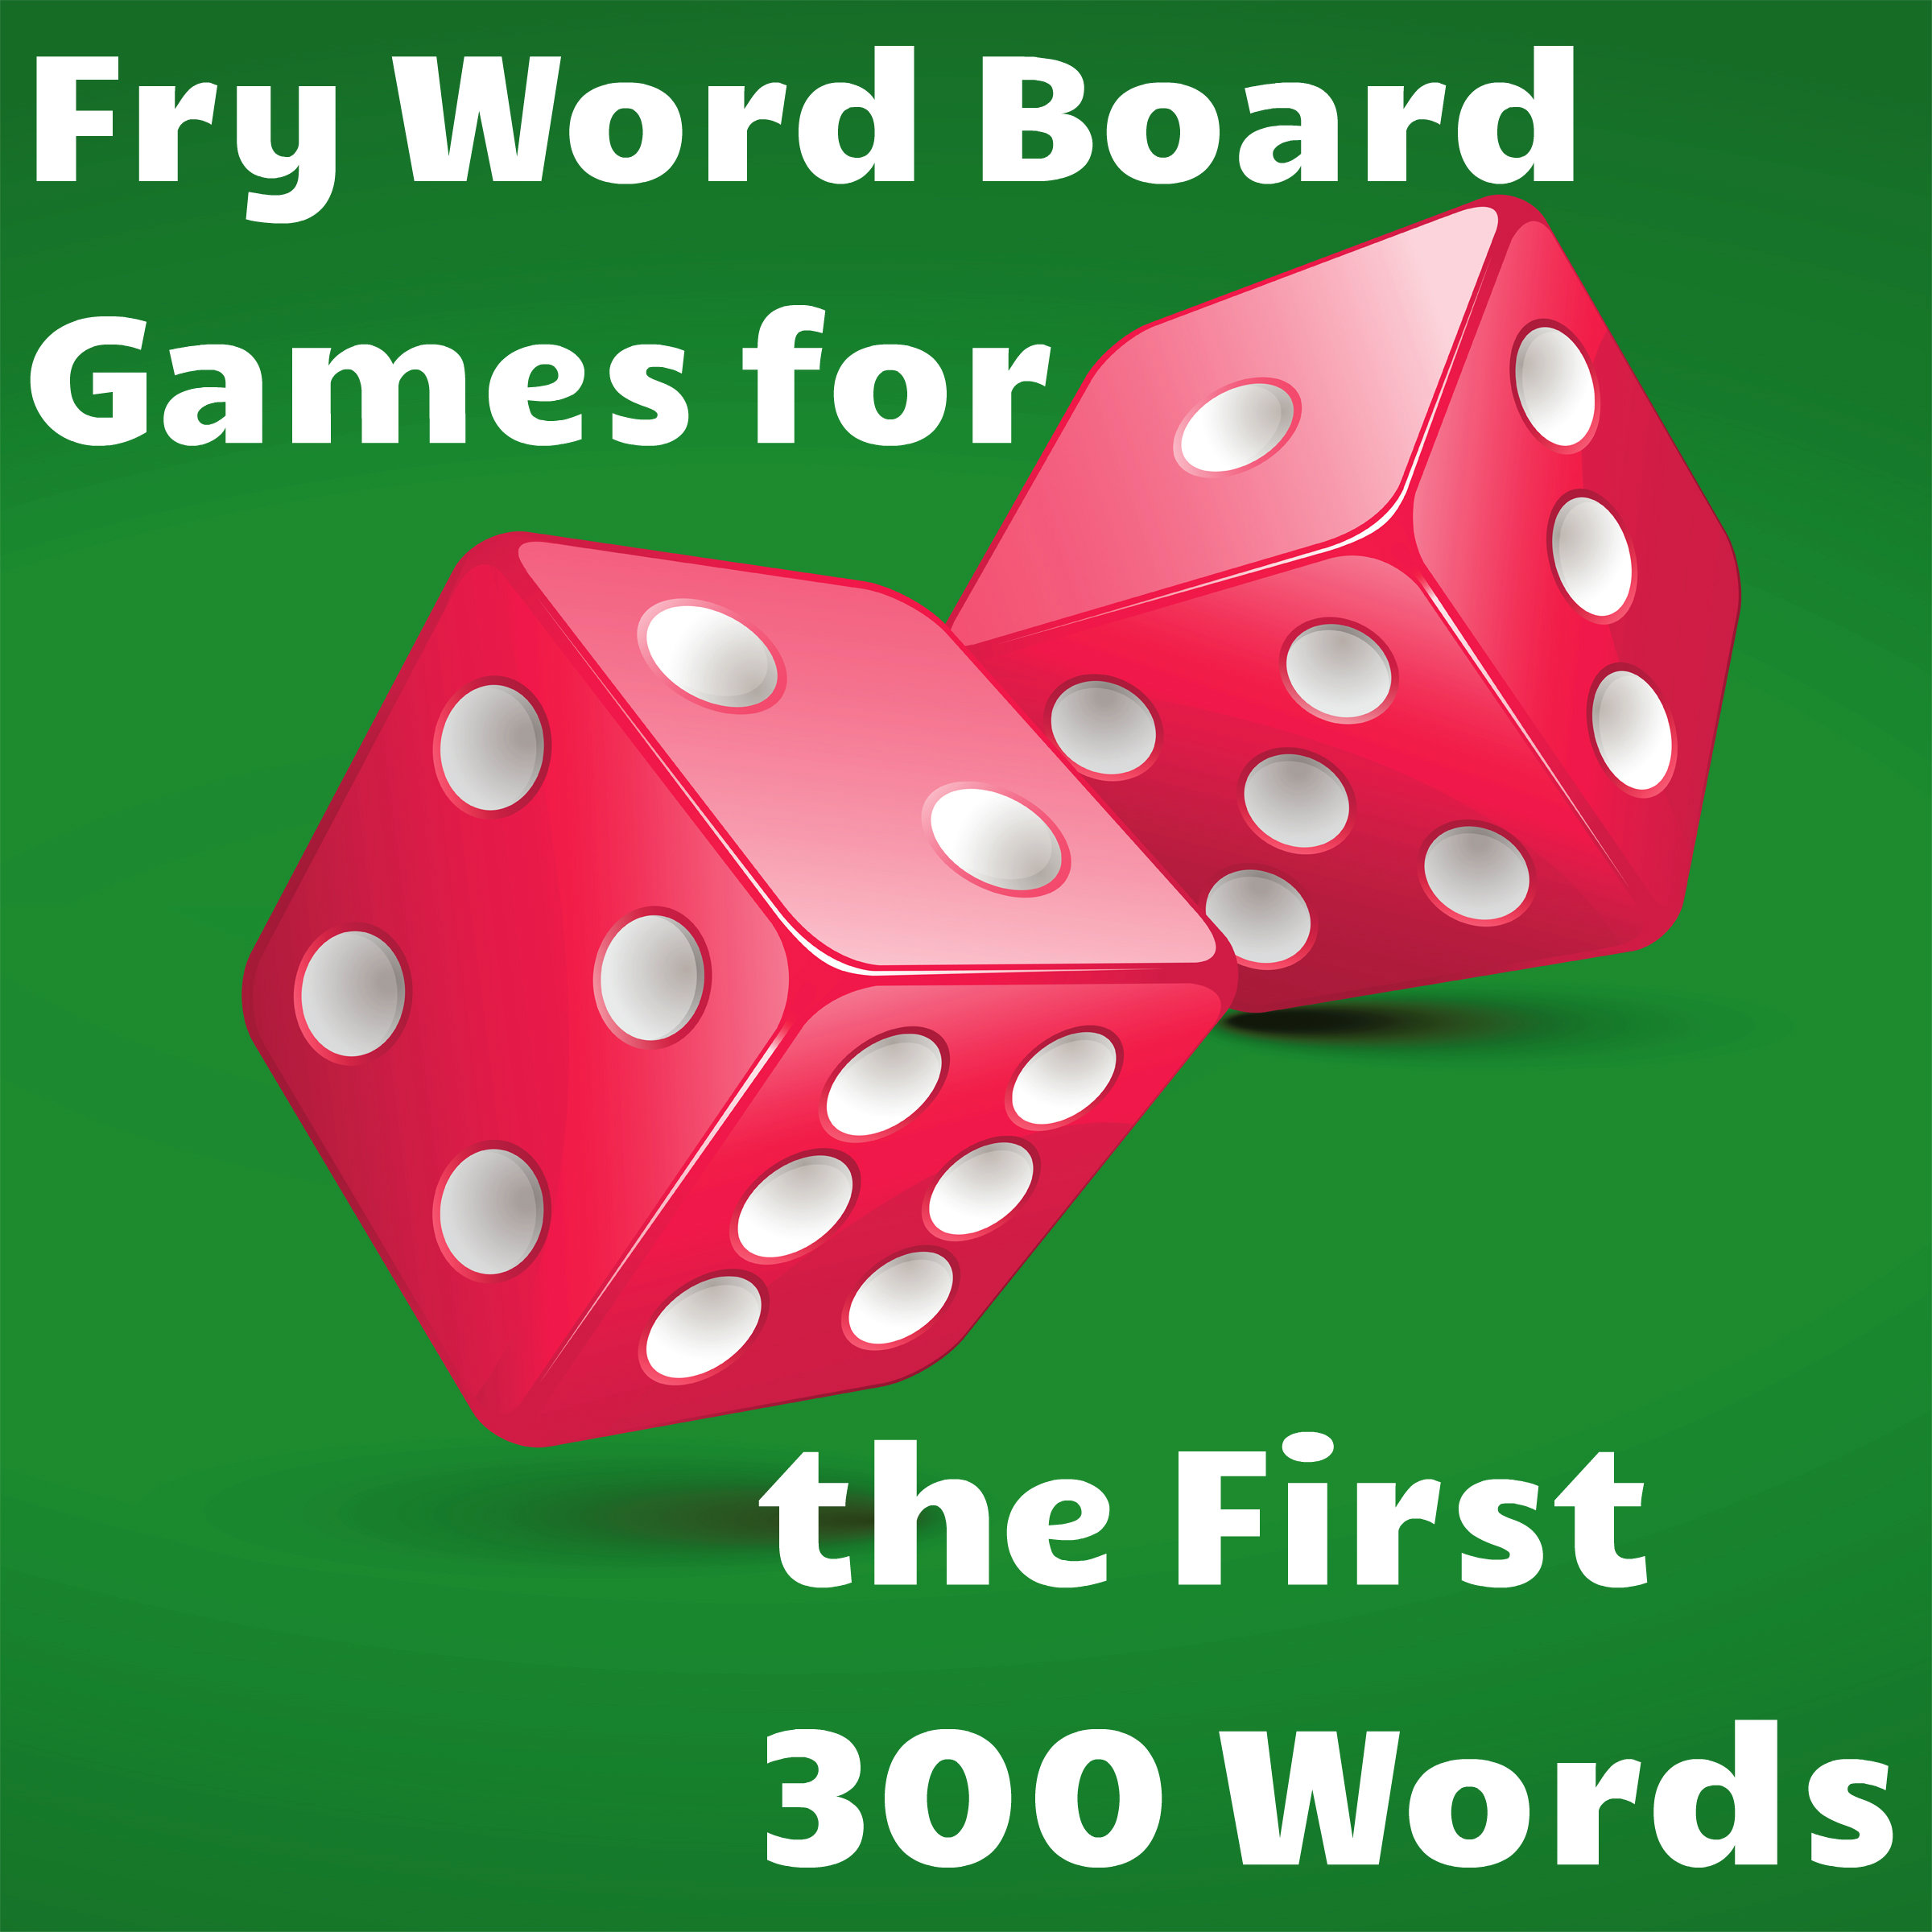 Free fry word board games.